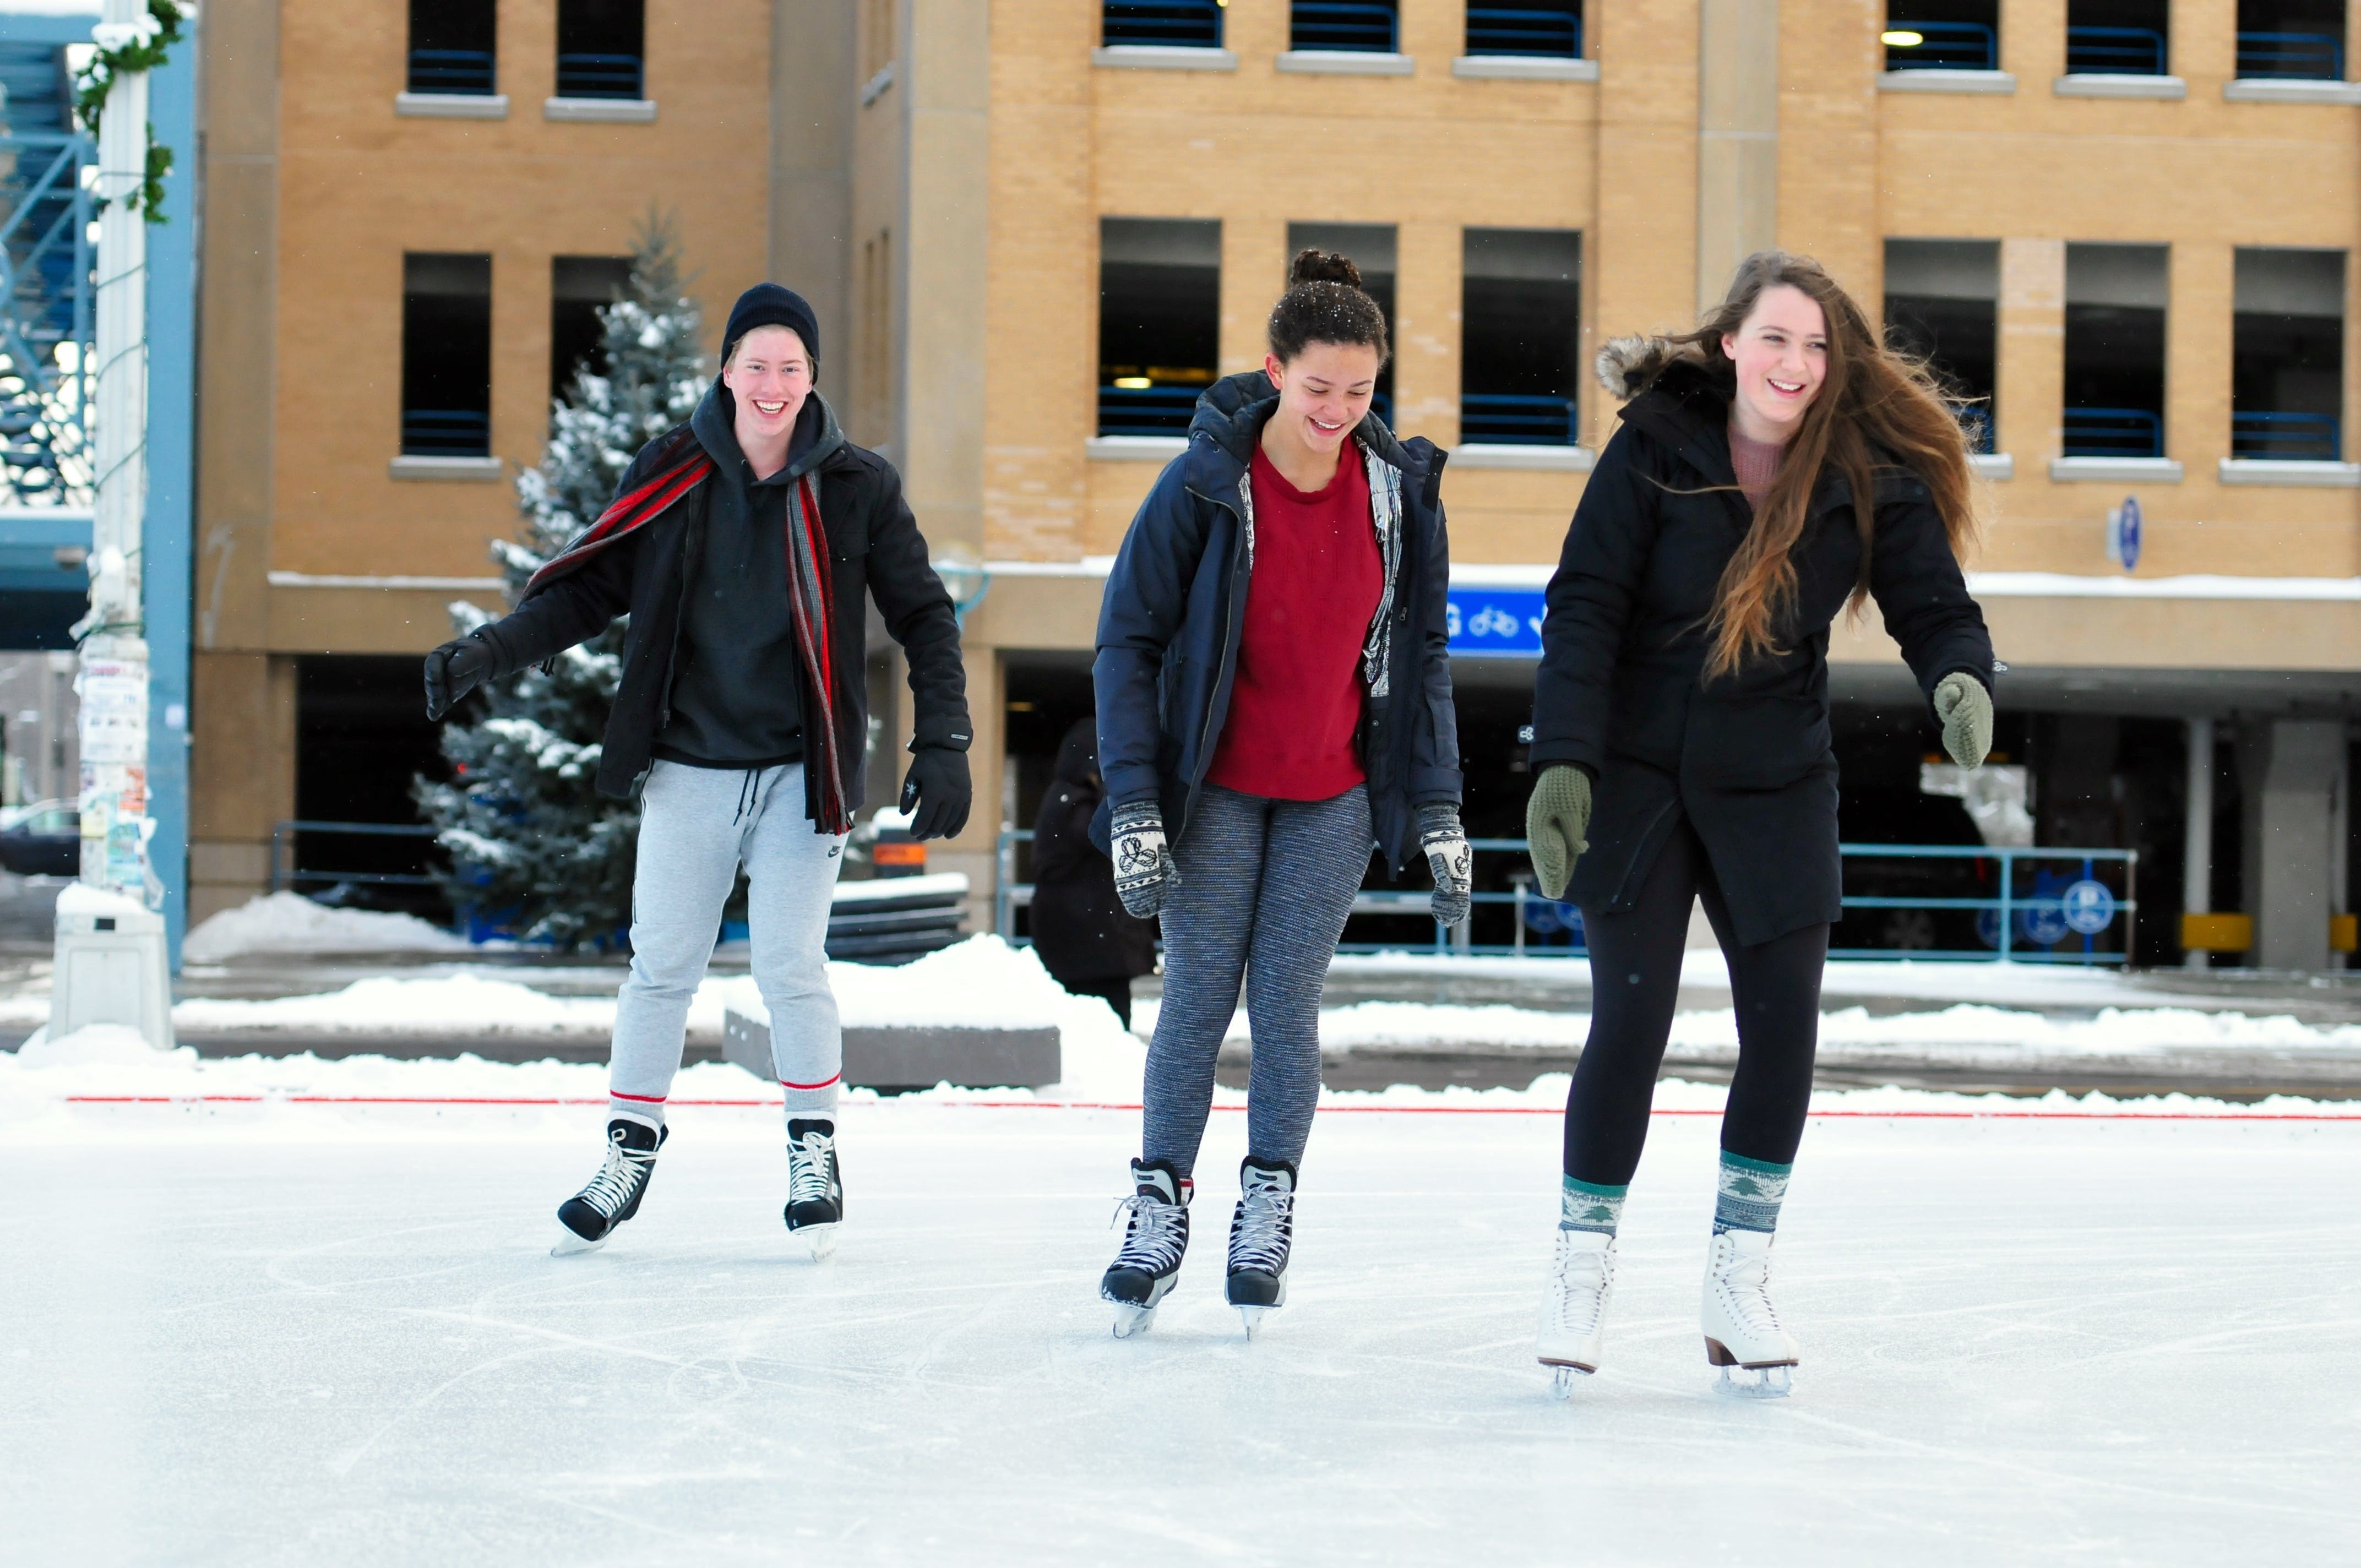 Ice skating at the Waterloo Public Square rink